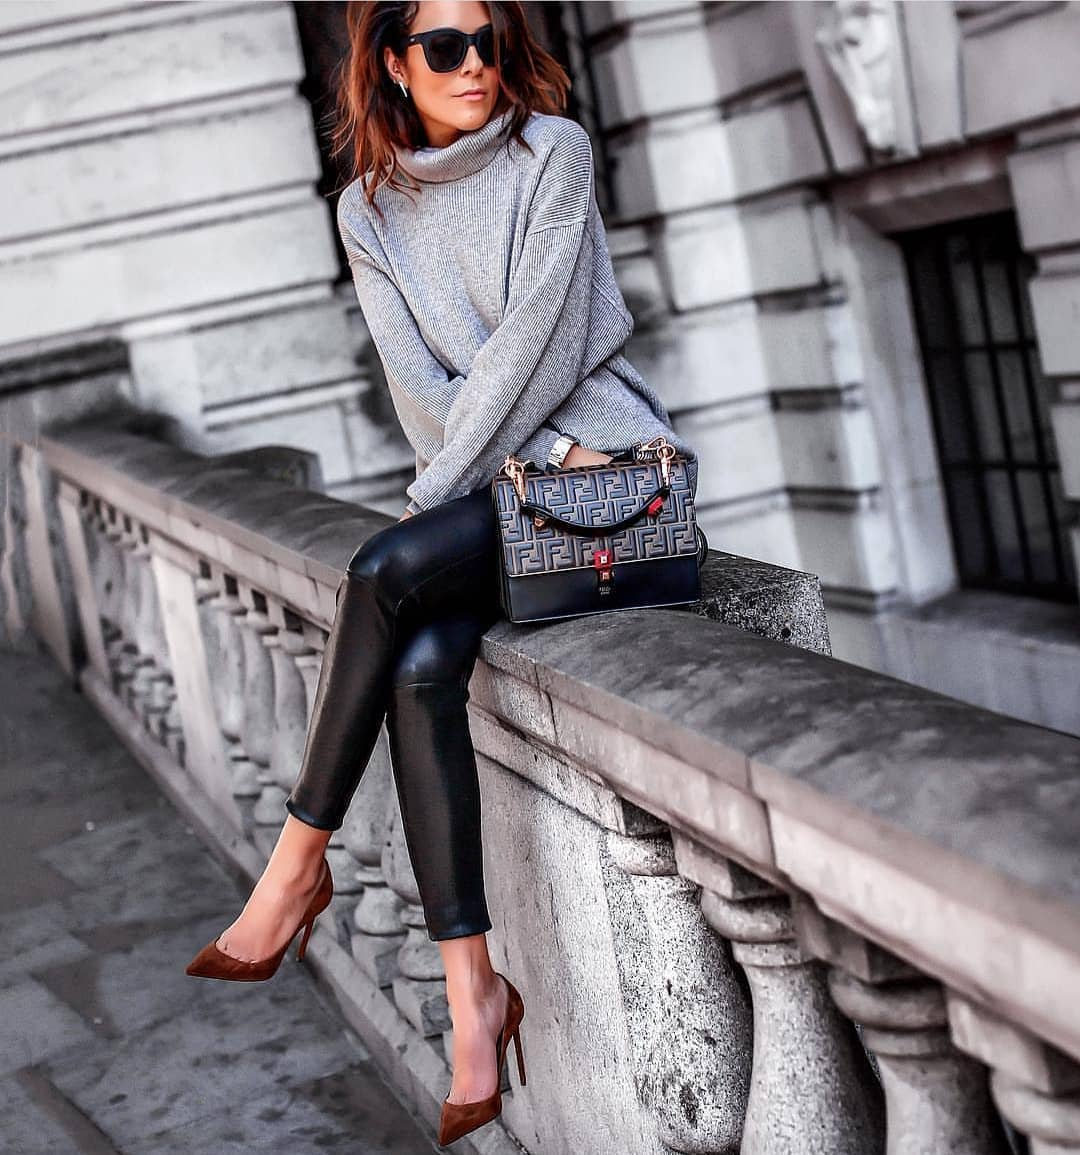 Oversized Grey Sweater And Black Leather Slim Pants: Perfect Fall Outfit 2020